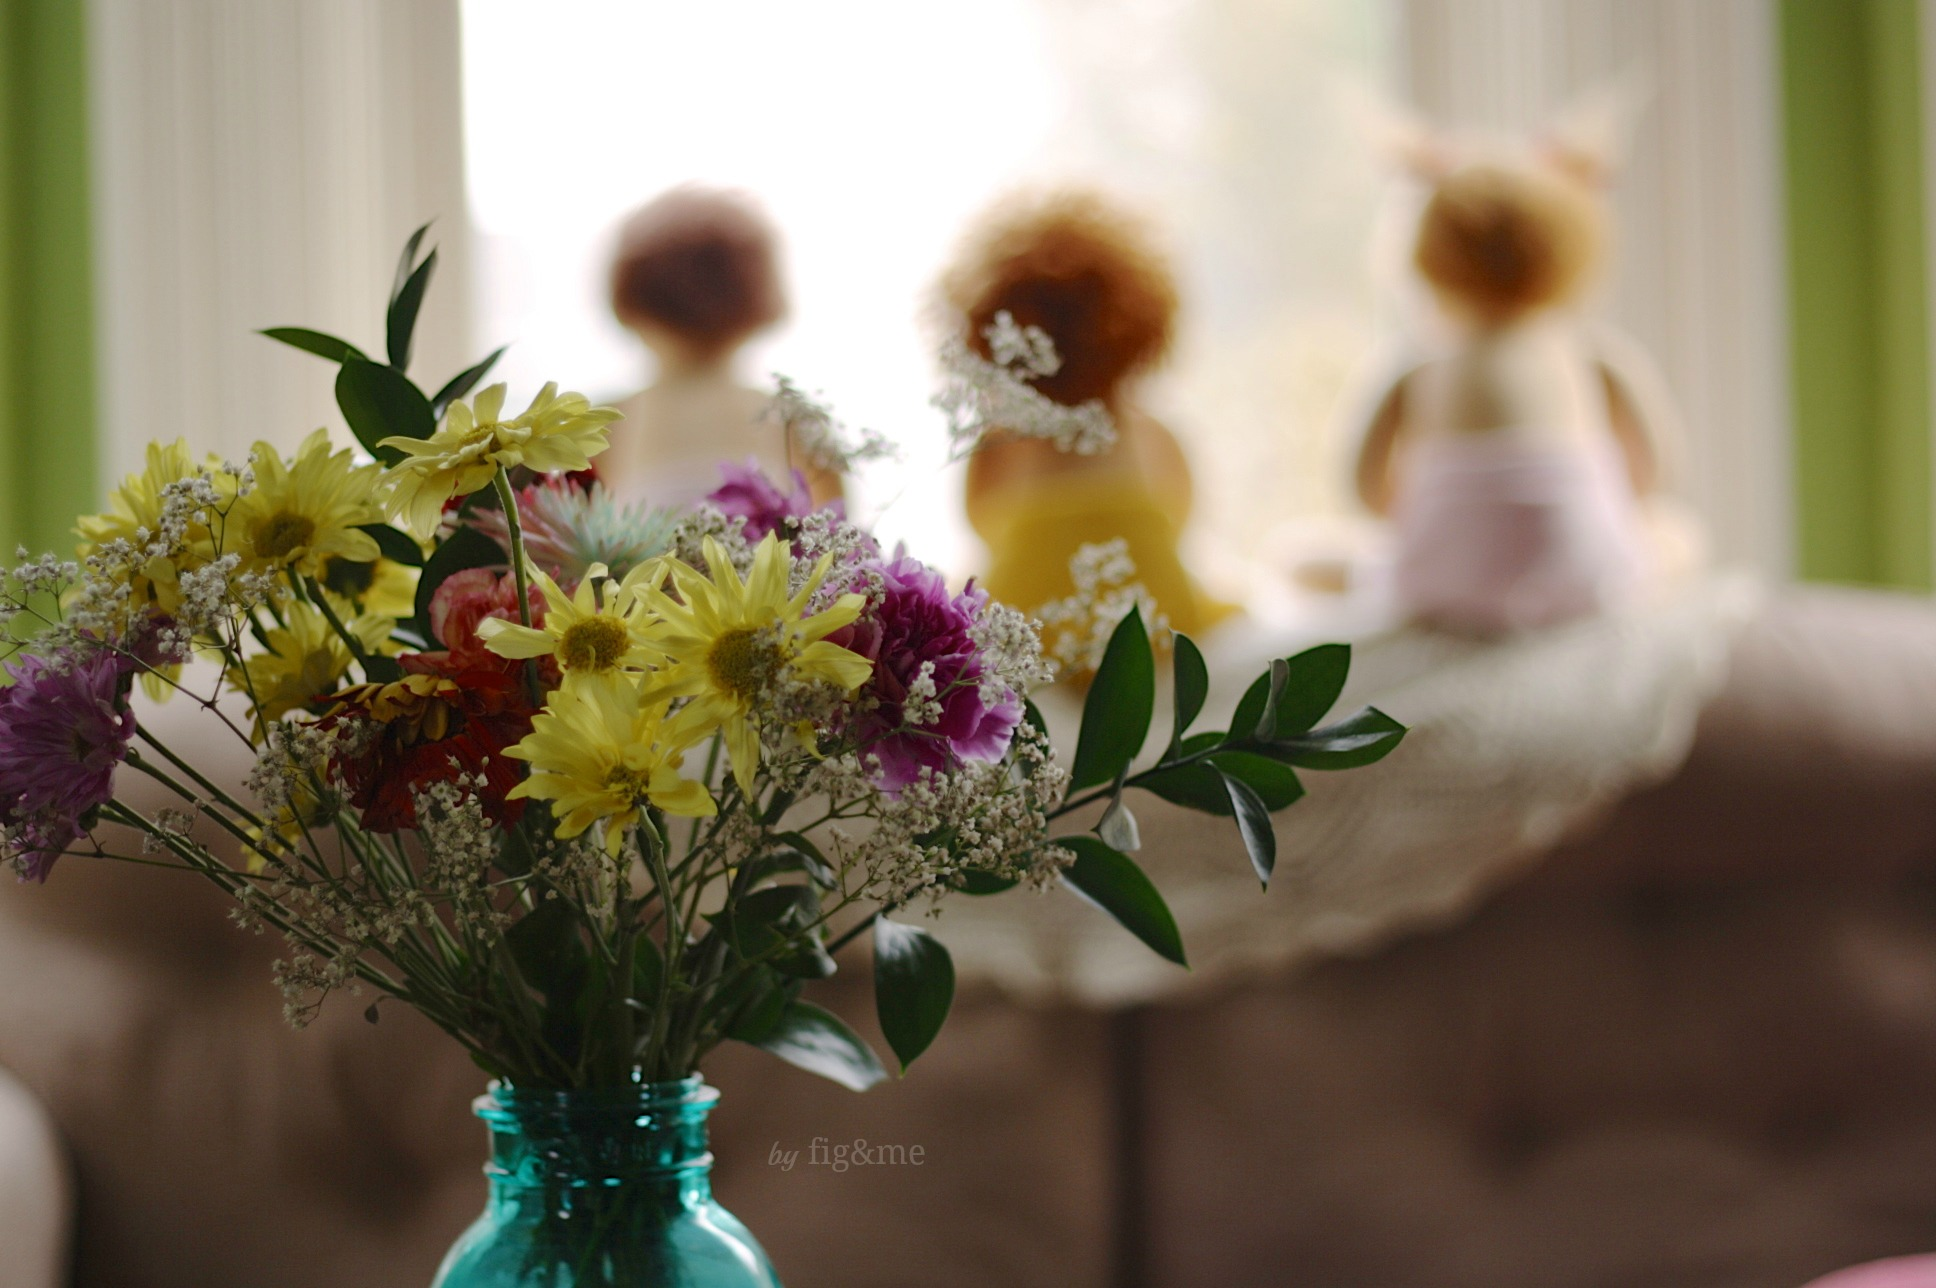 My birthday flowers, Fig and me.